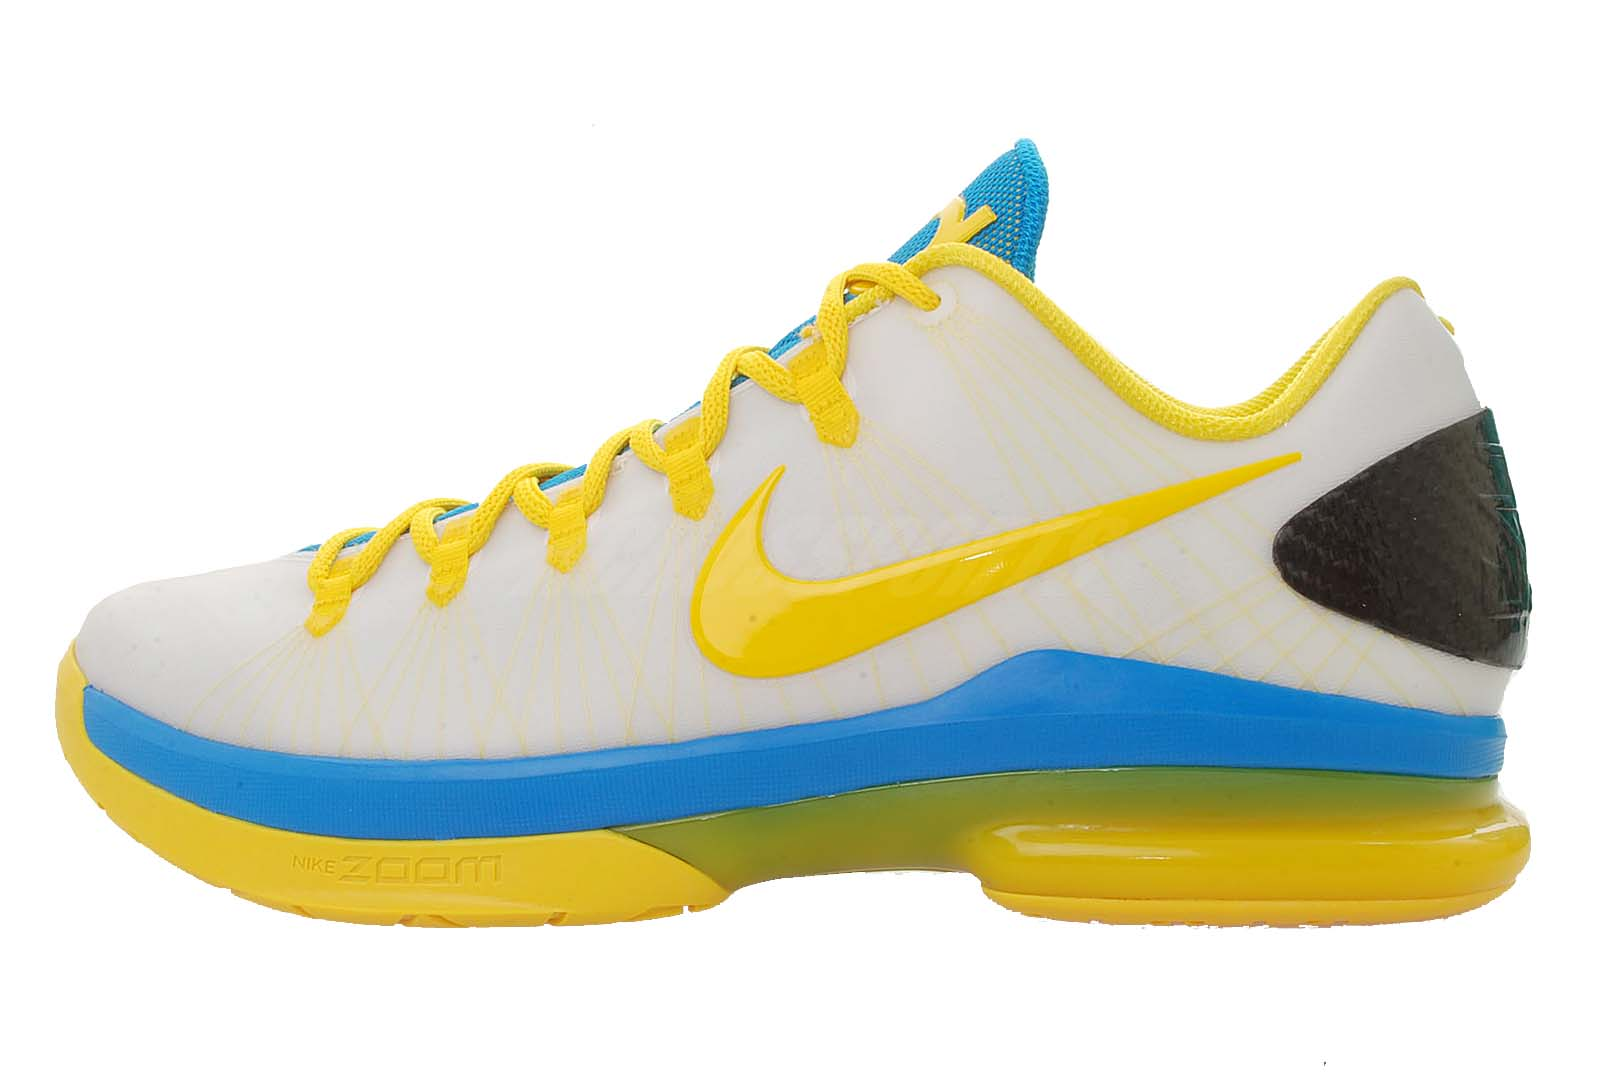 on sale 992ee 7521b This Oklahoma City styled shoe is one of two other pairs hitting the market  that are part of the Nike KD V Elite colorways.